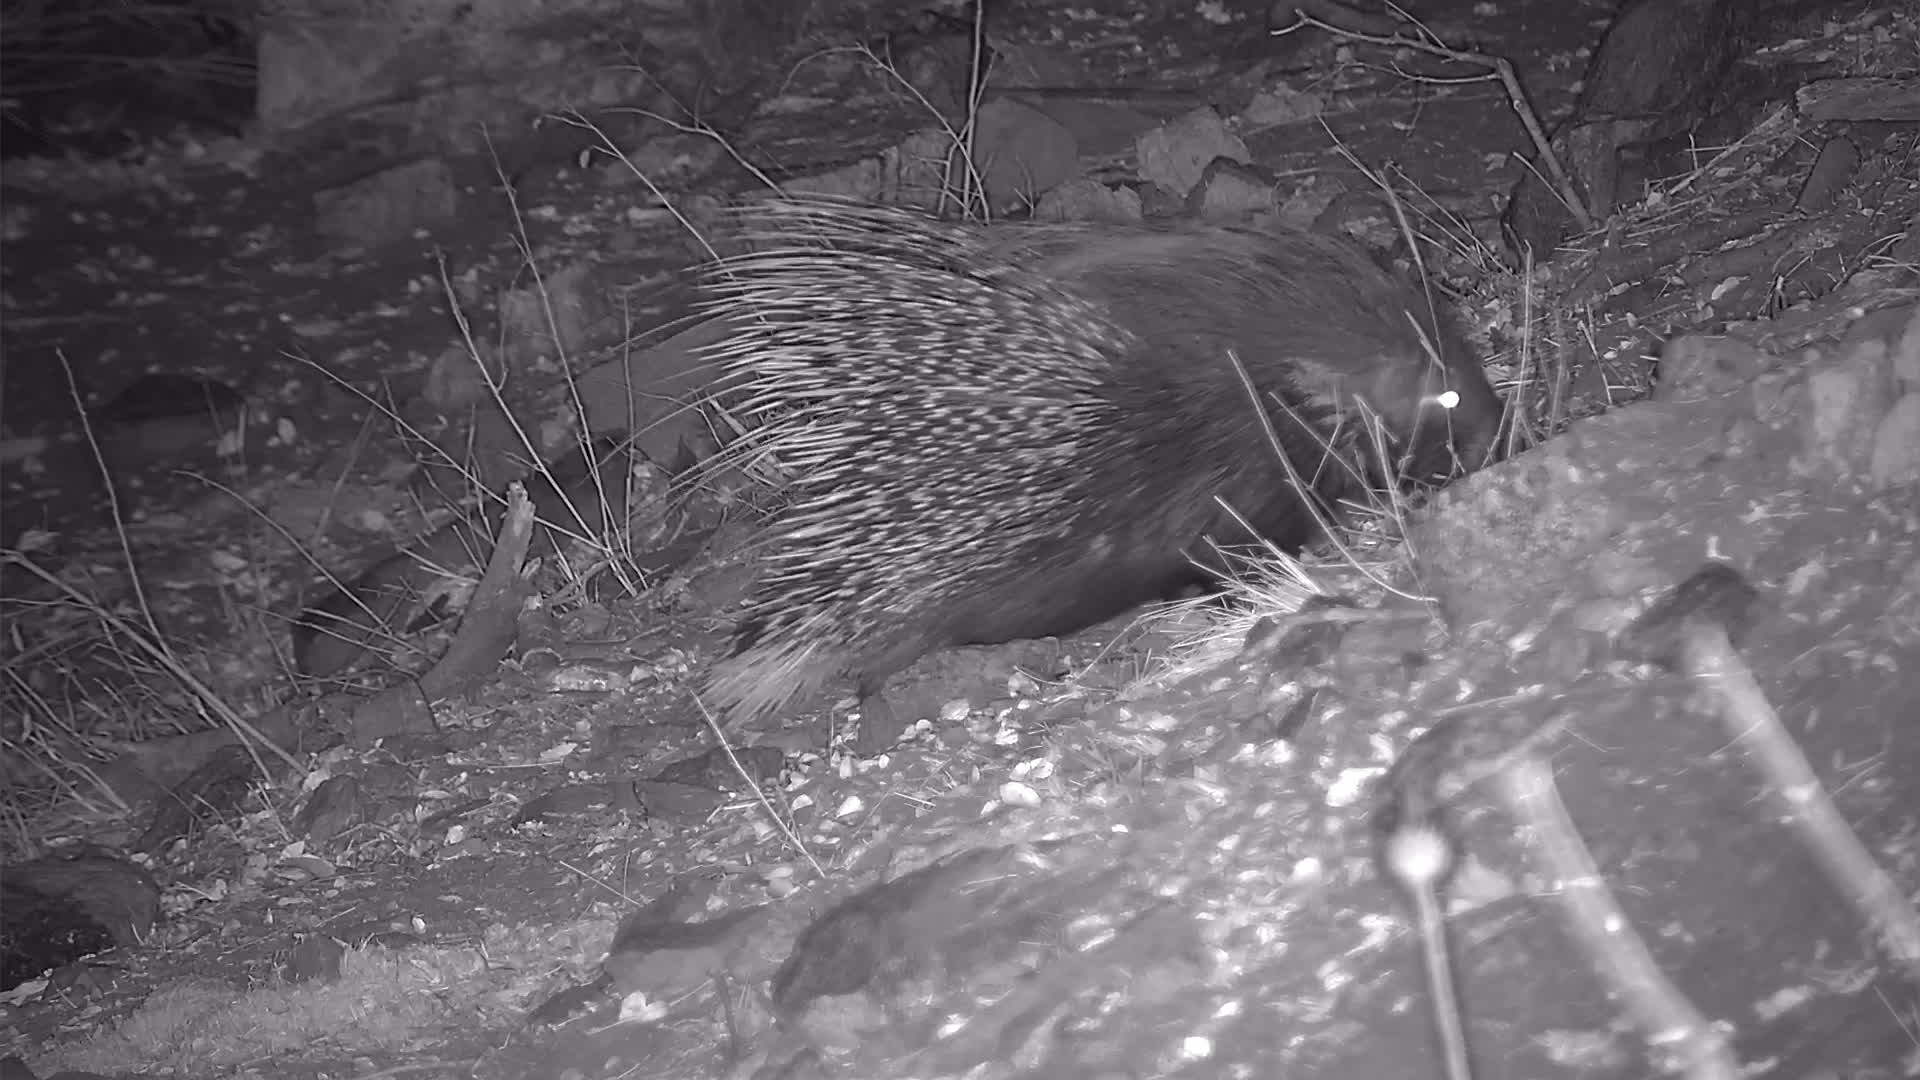 VIDEO:  Porcupine Foraging in the Veld